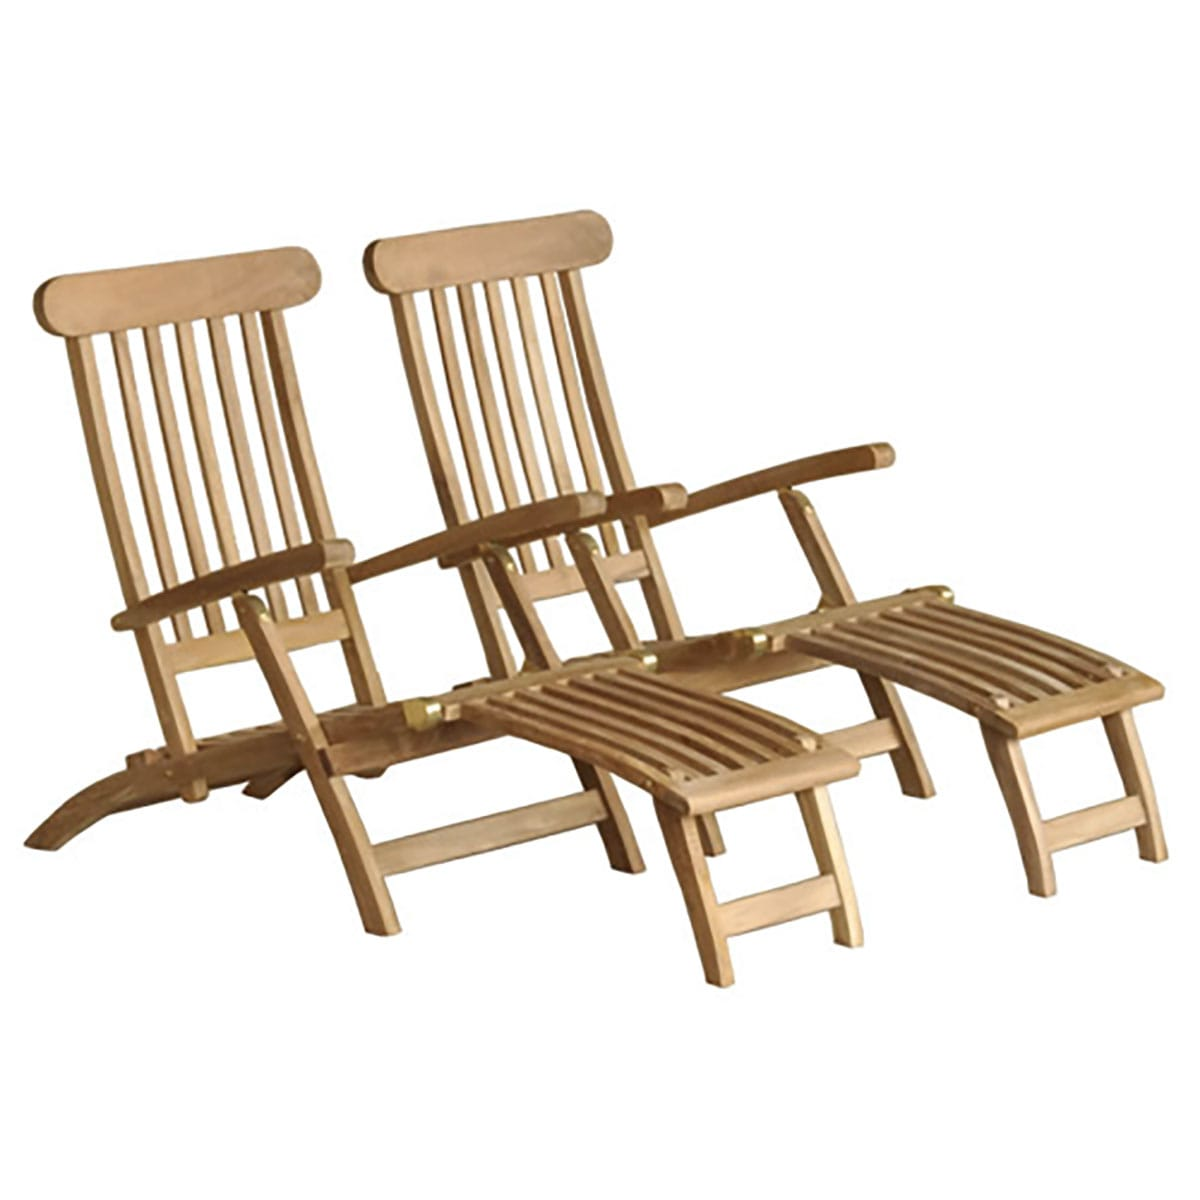 TNatureamp; En Steamers Longues Découvertes 2 De Lot Chaises y0nvm8wON